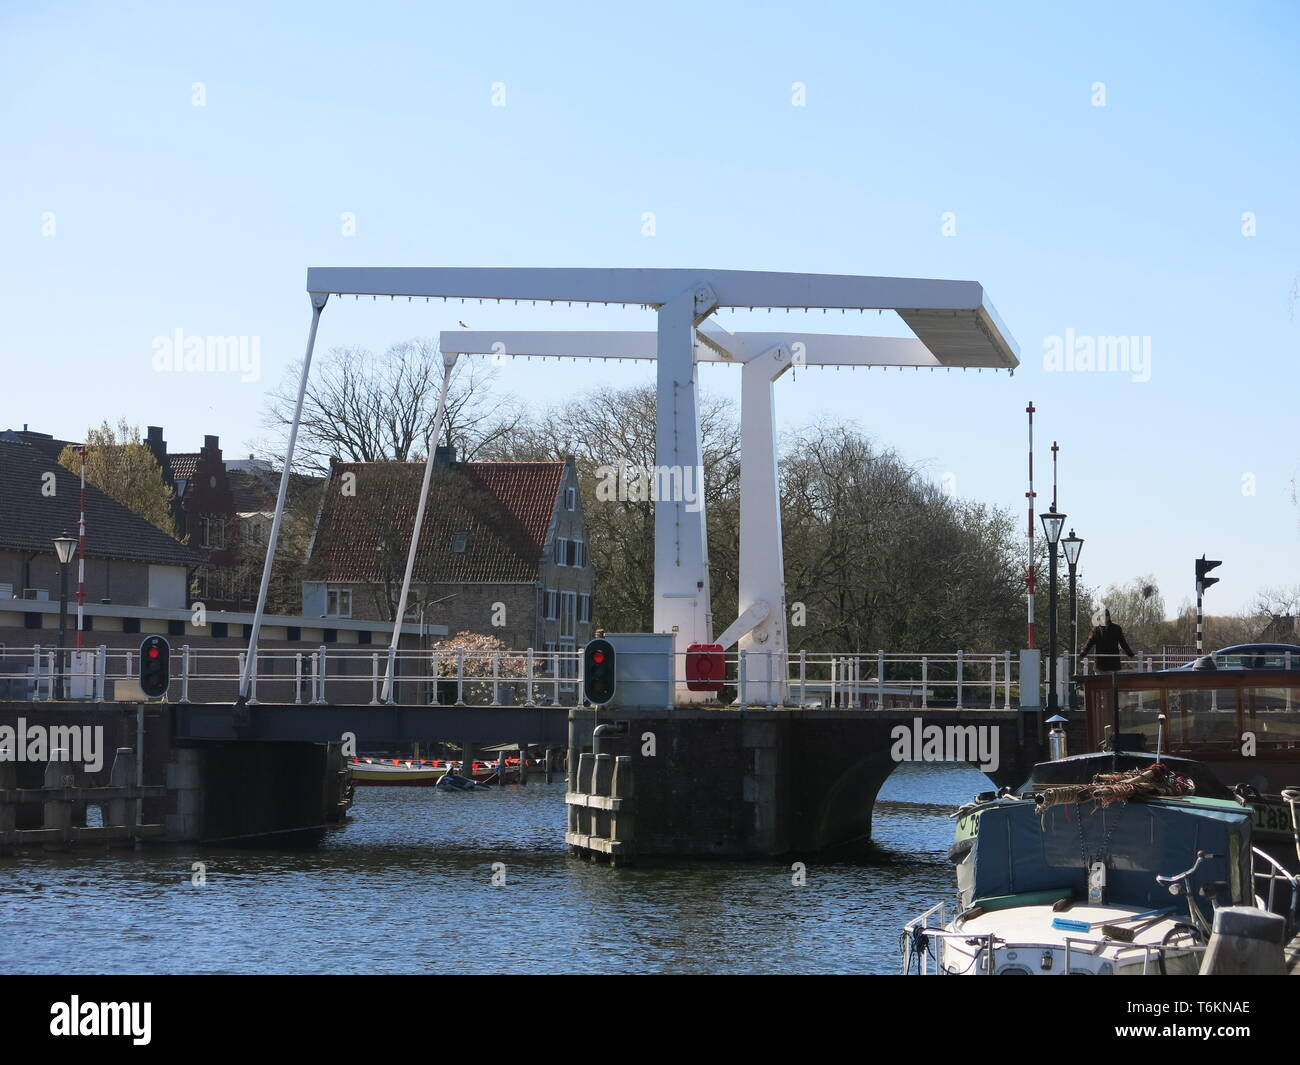 View of a typically Dutch white bascule bridge crossing the canal at Enkhuizen, a pretty coastal town in North Holland; April 2019 - Stock Image